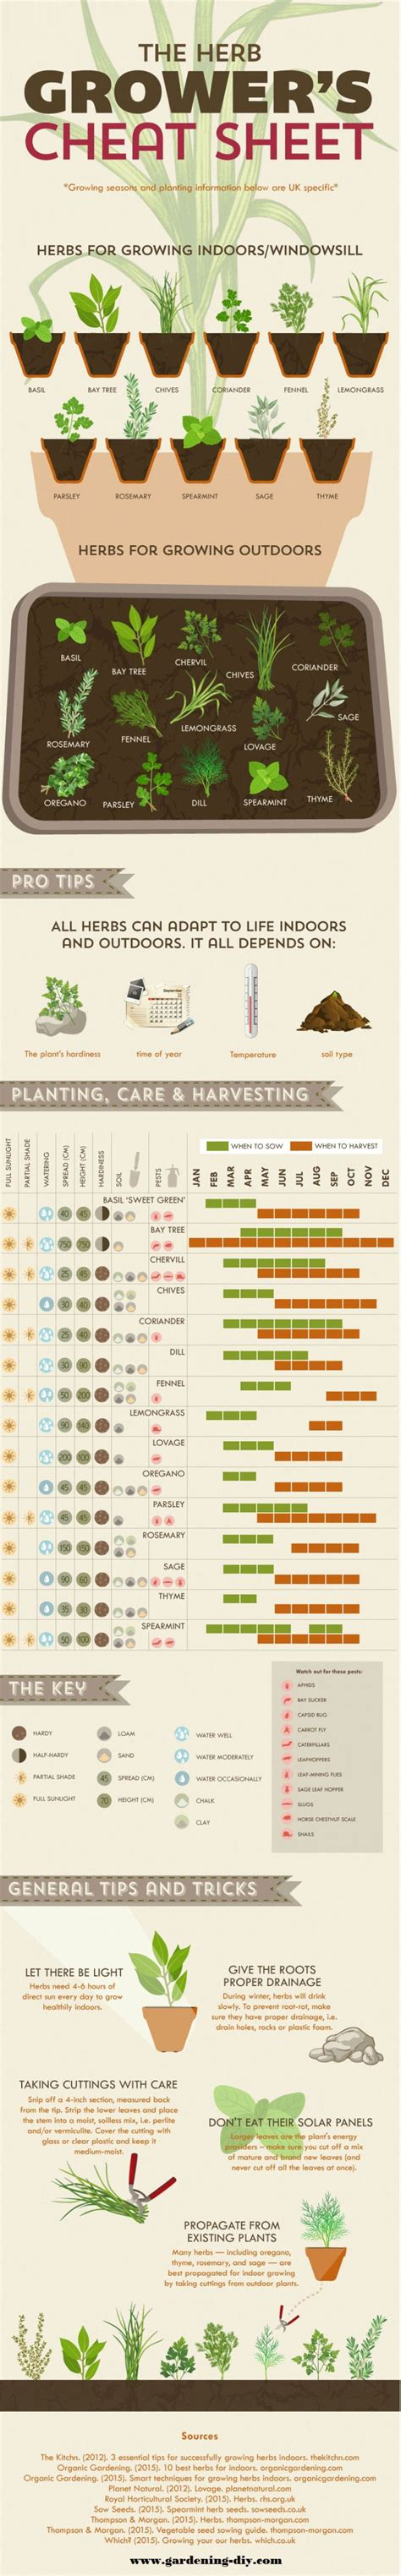 herb grower s cheat sheet 17 best images about herbs on pinterest gardens lungs